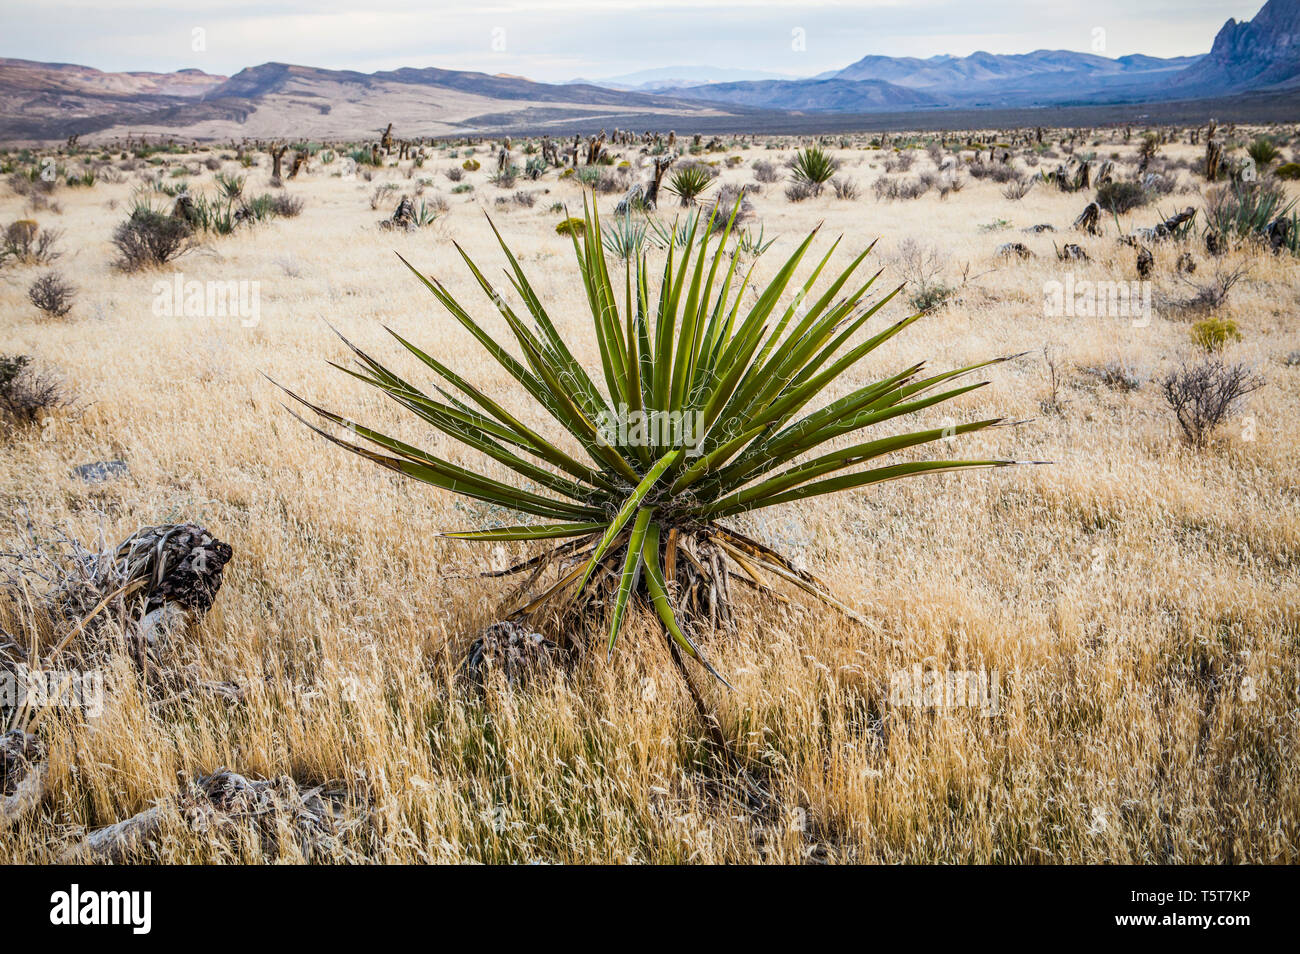 Yucca Mojave, Red Rock Canyon Conservation Area, Nevada, USA Photo Stock